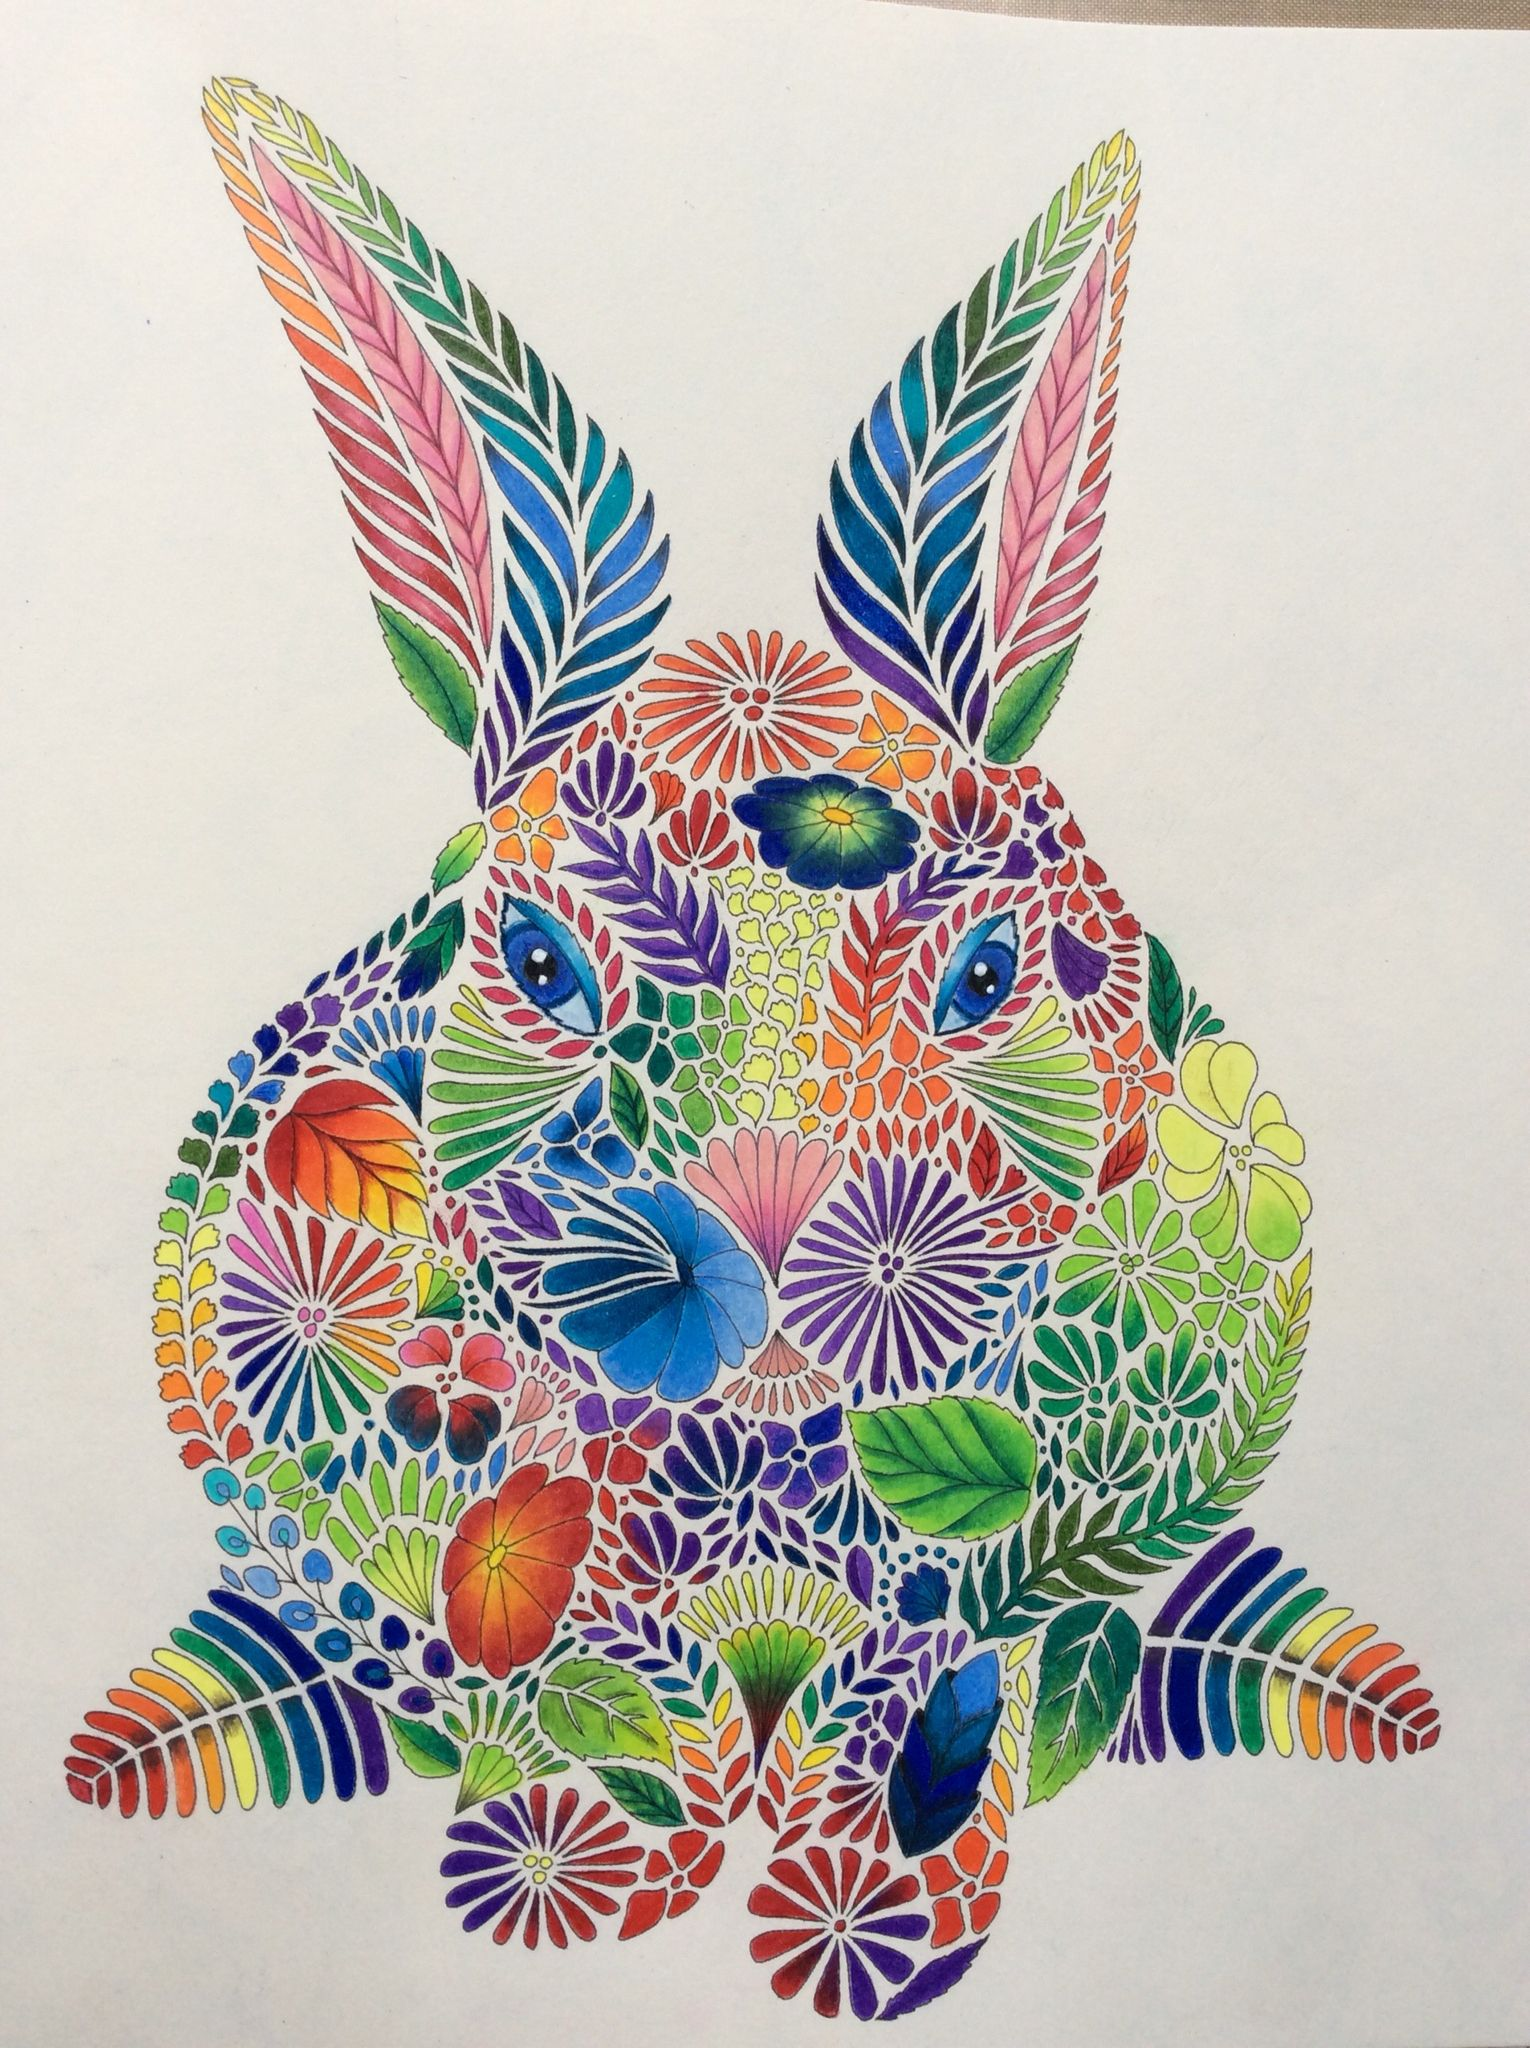 Animal Kingdom From Millie Marotta With Prismacolor Pencils Briahbataryeh